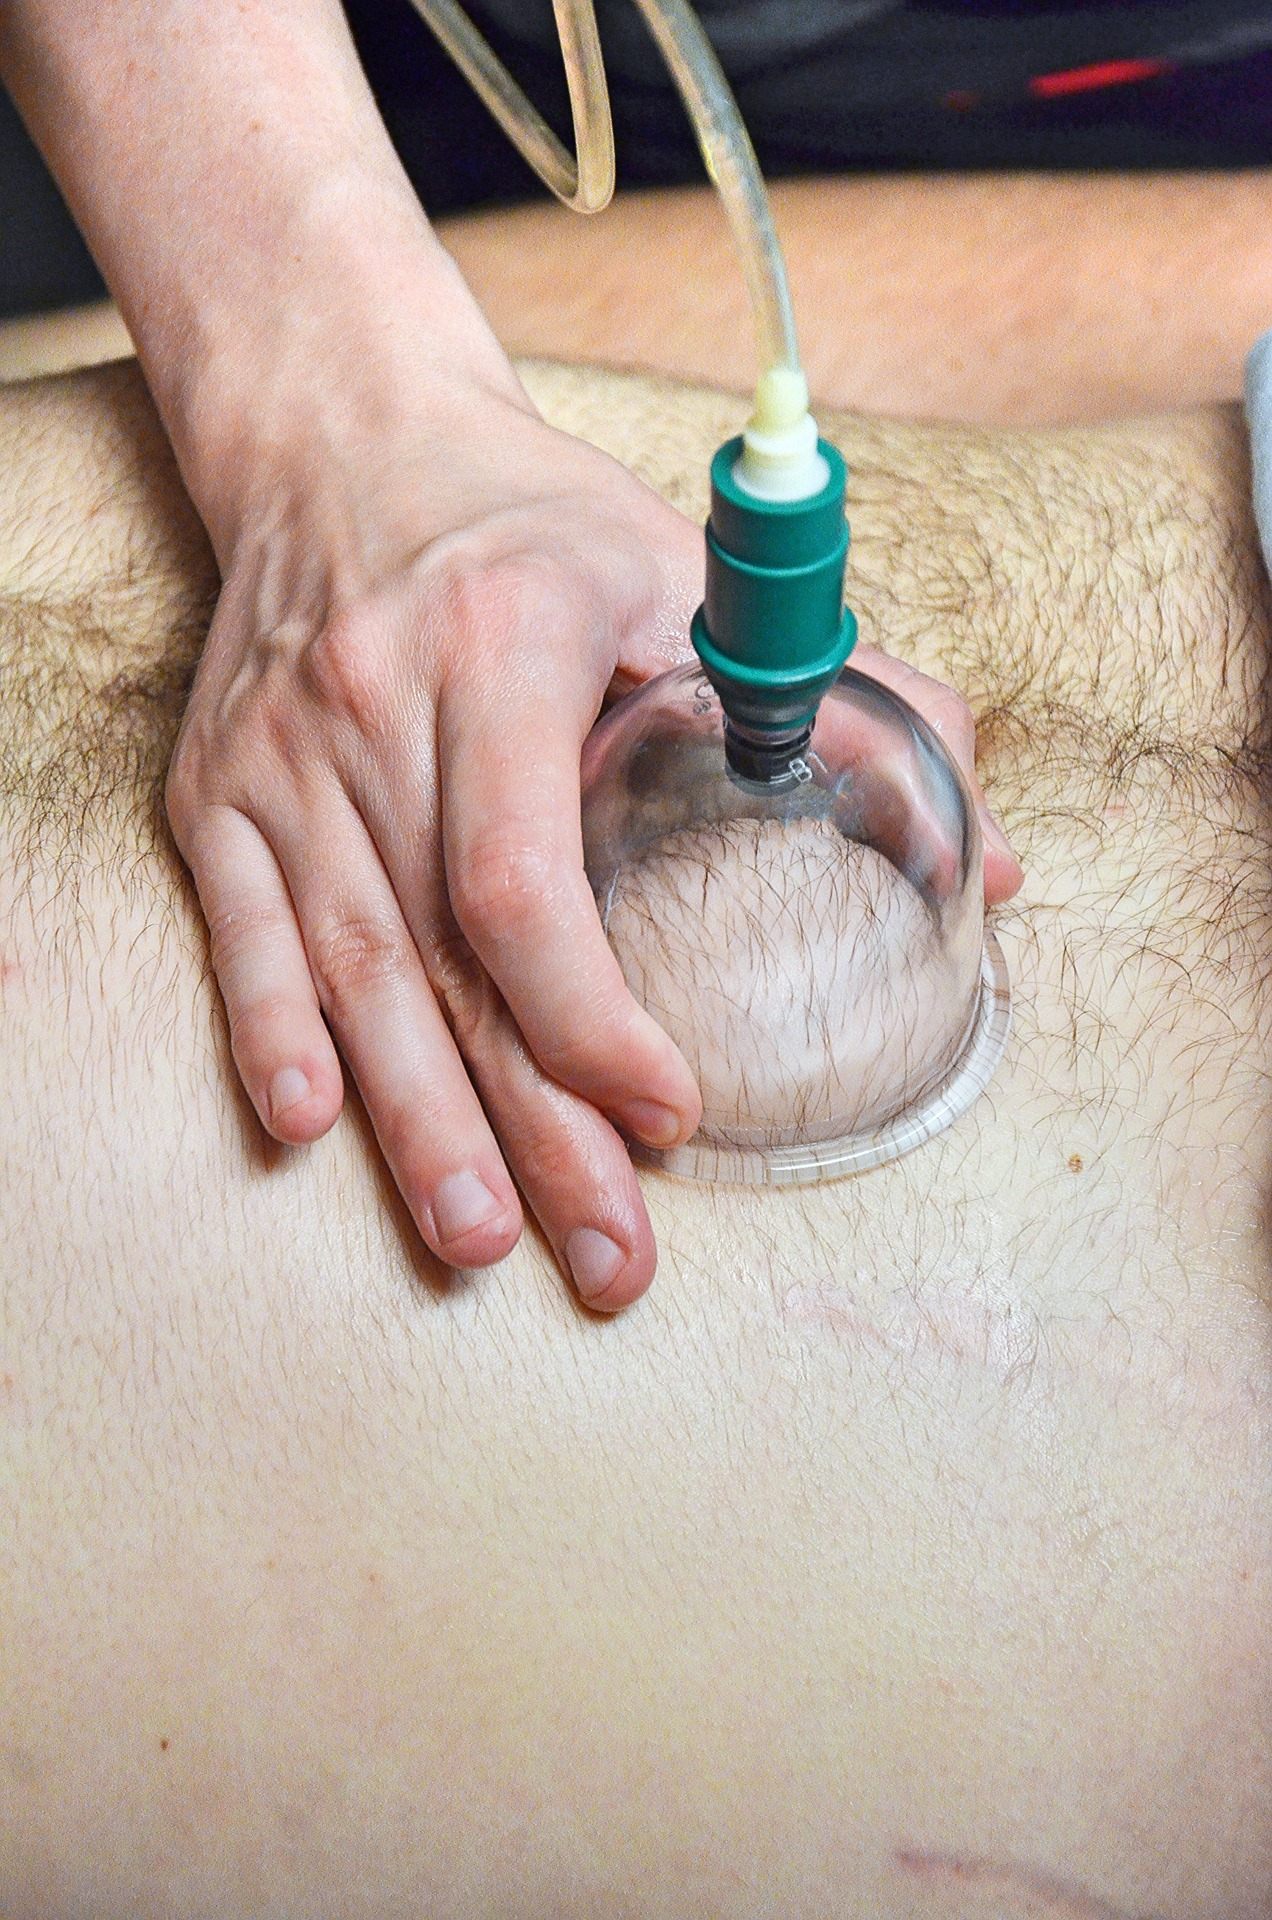 Believe It Or Not, A Suction Cup Is The Reason For Those Welts!